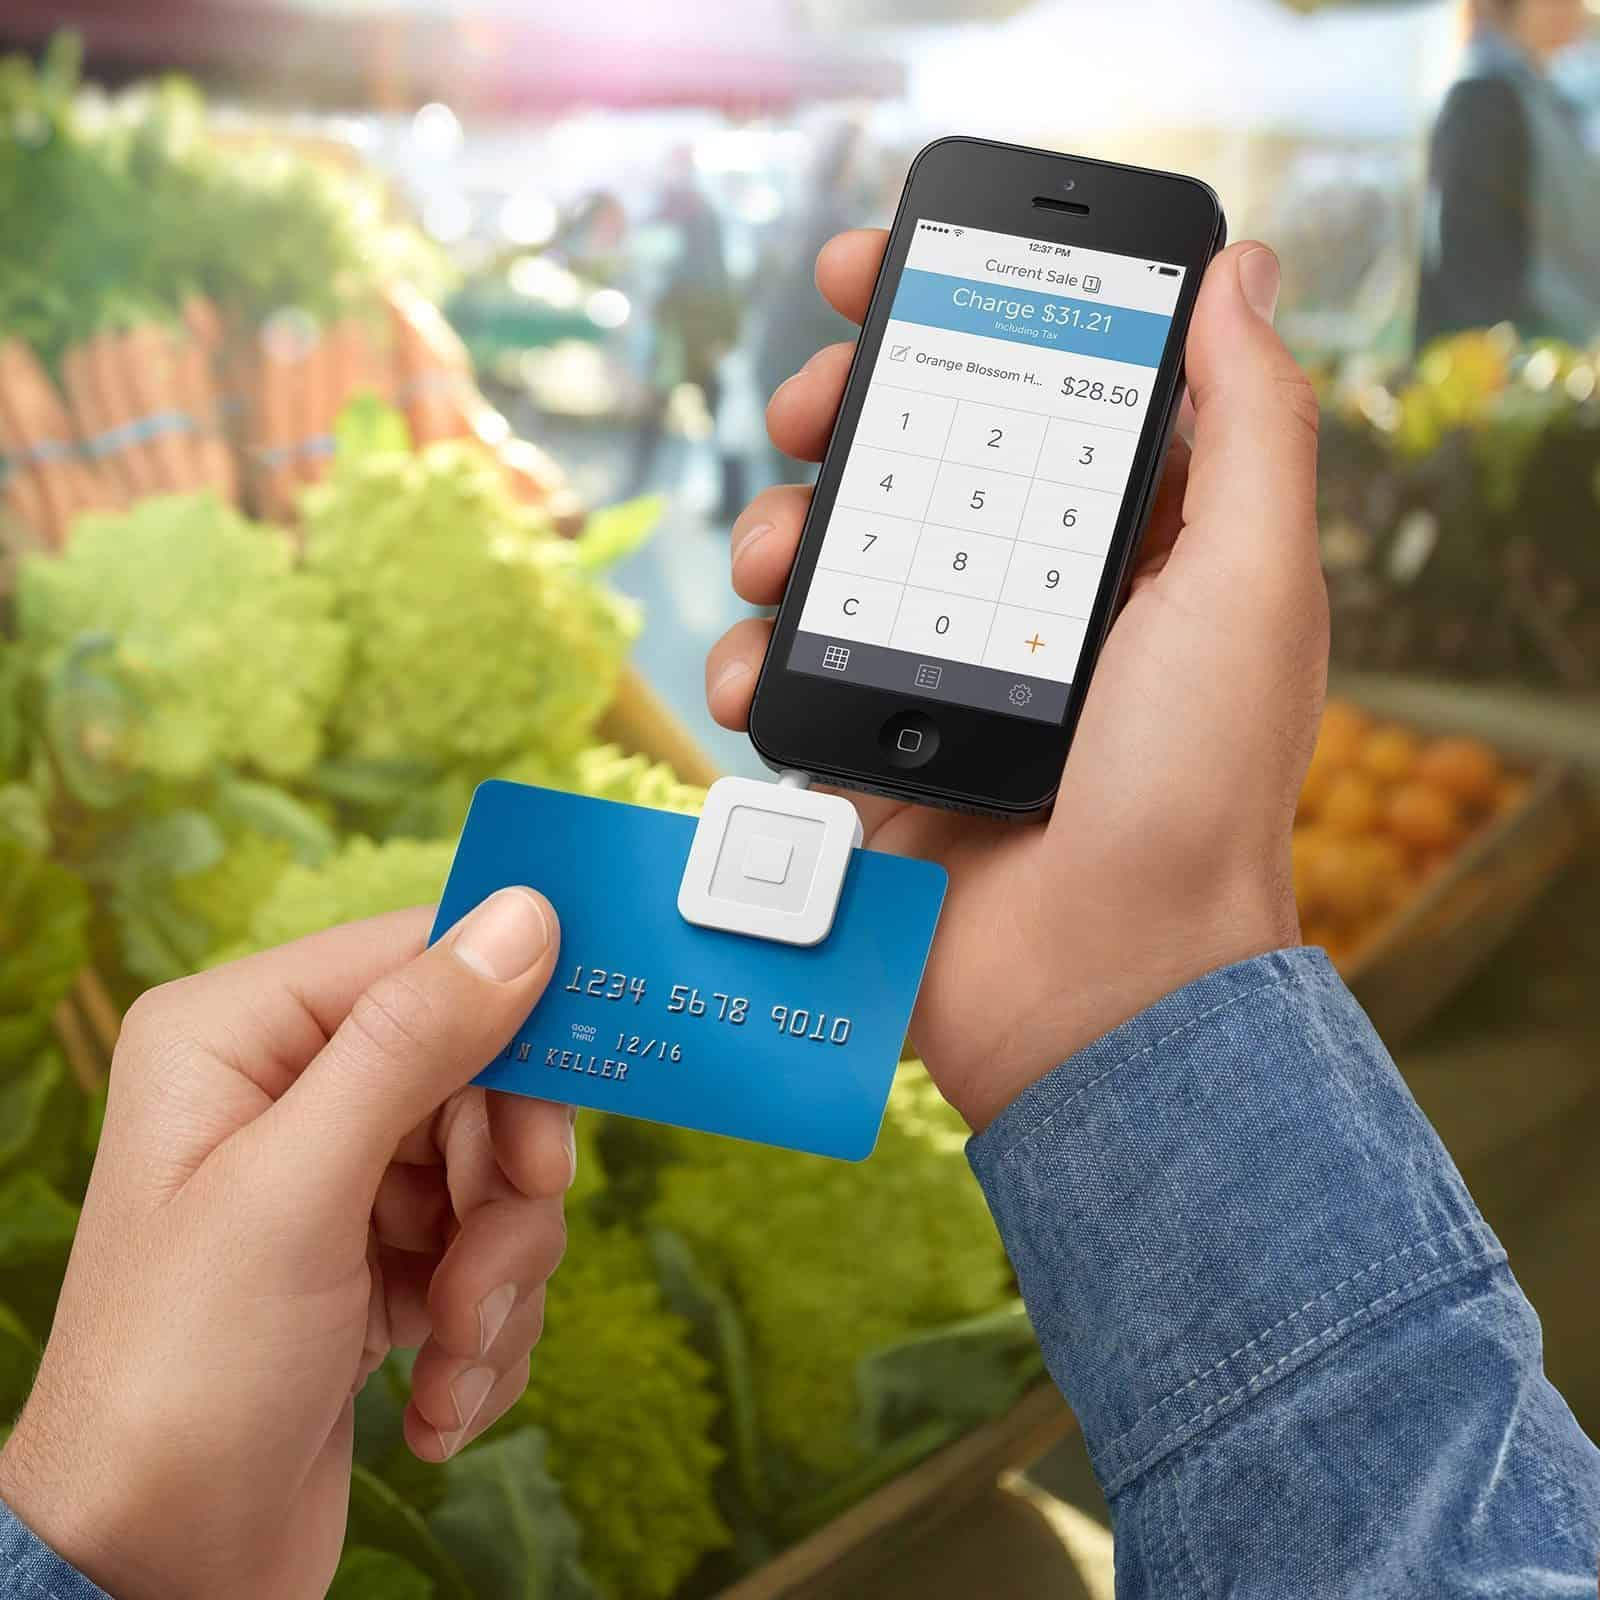 What is cheaper than Square?